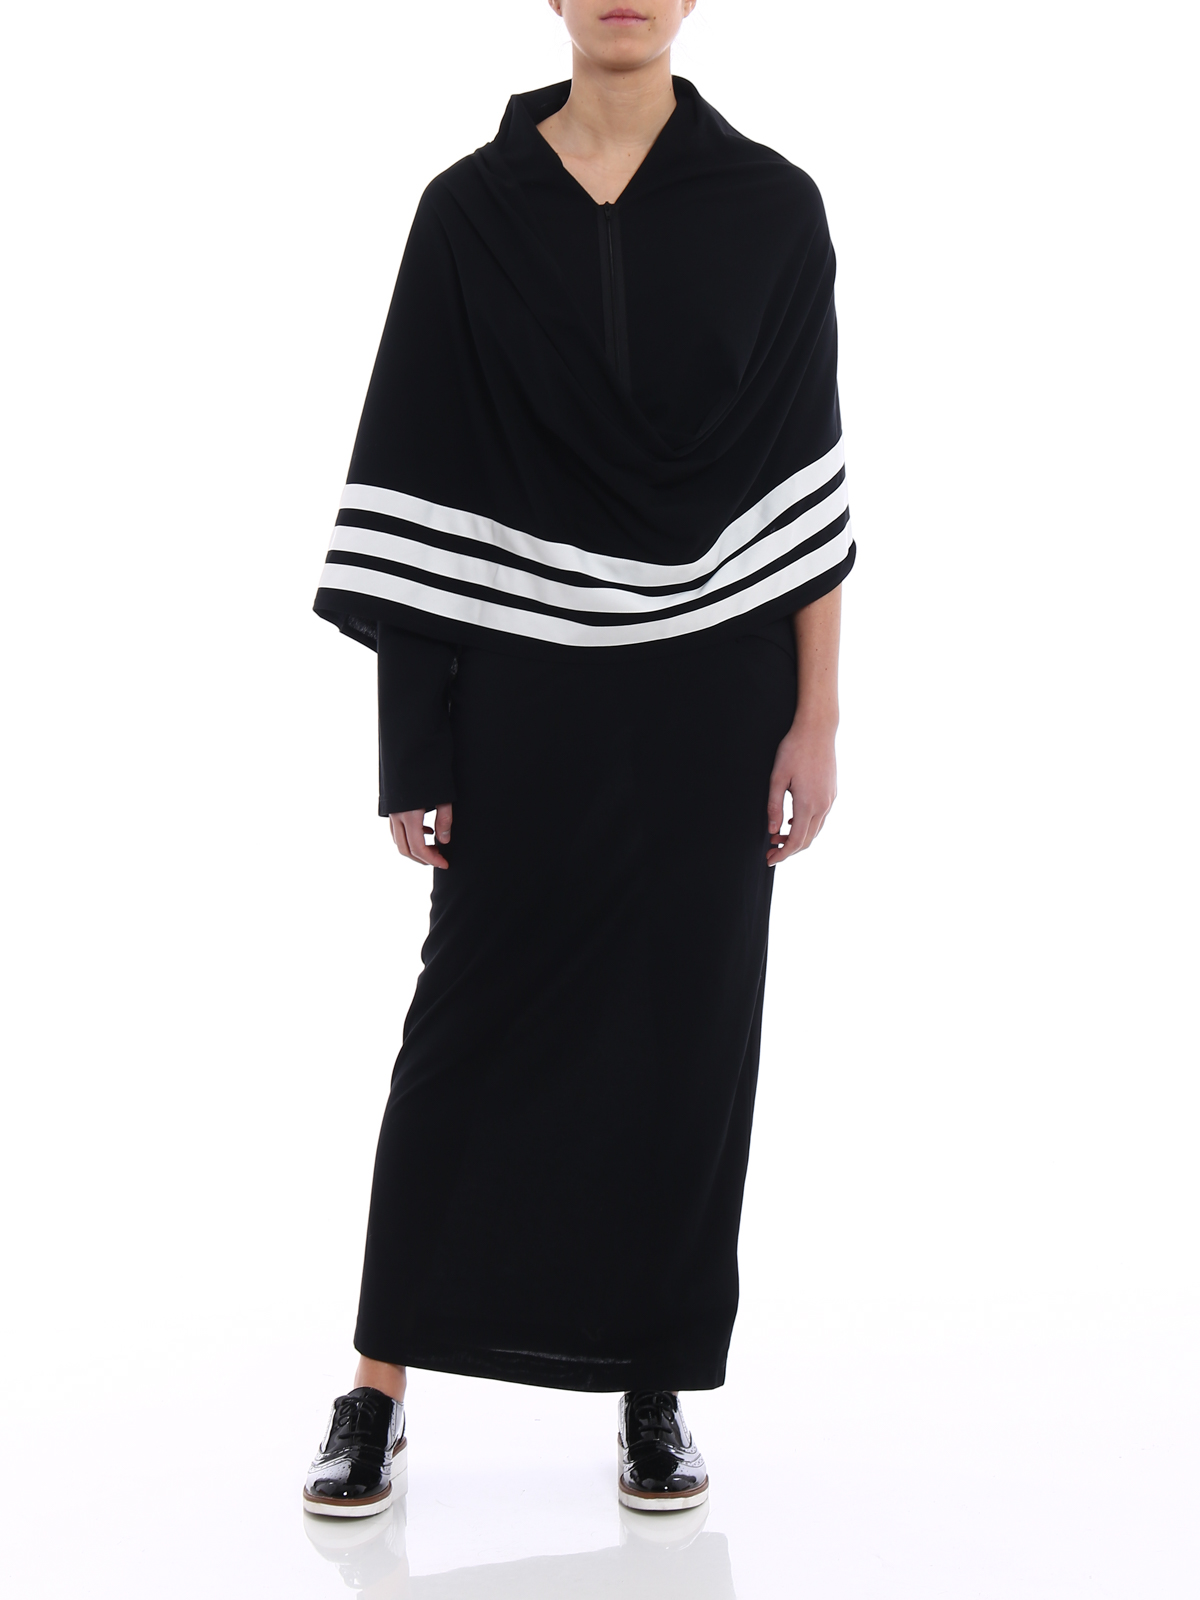 Suponer Alacena temor  Adidas Y-3 - Maxi kimono dress with scarf - maxi dresses -  CY8388BLACKCOREWHITE